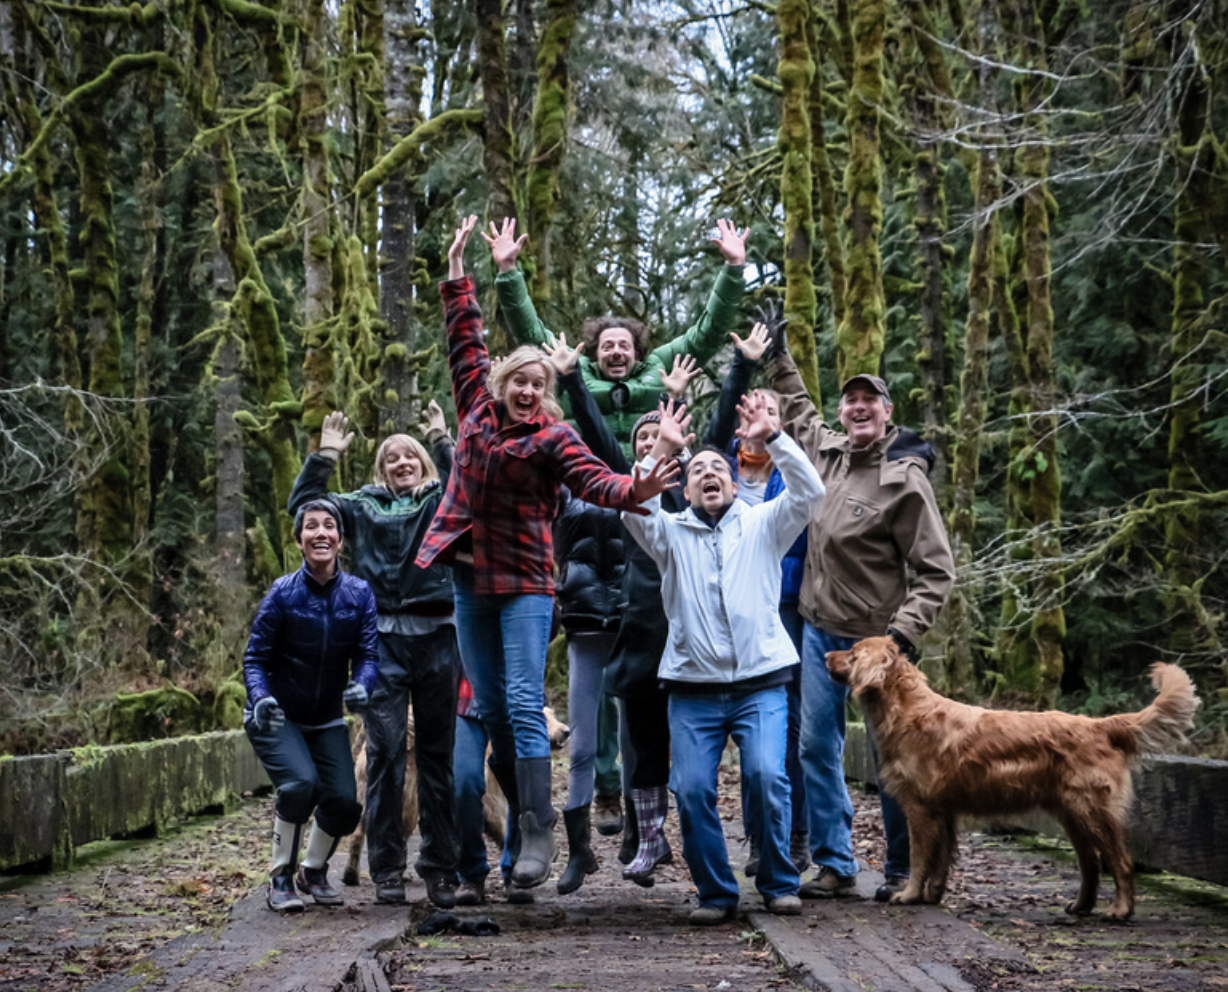 Taking a nature break (and silly photo opp) between sessions at a mid-winter retreat at the YogaFarm [photo: Raku Loren]